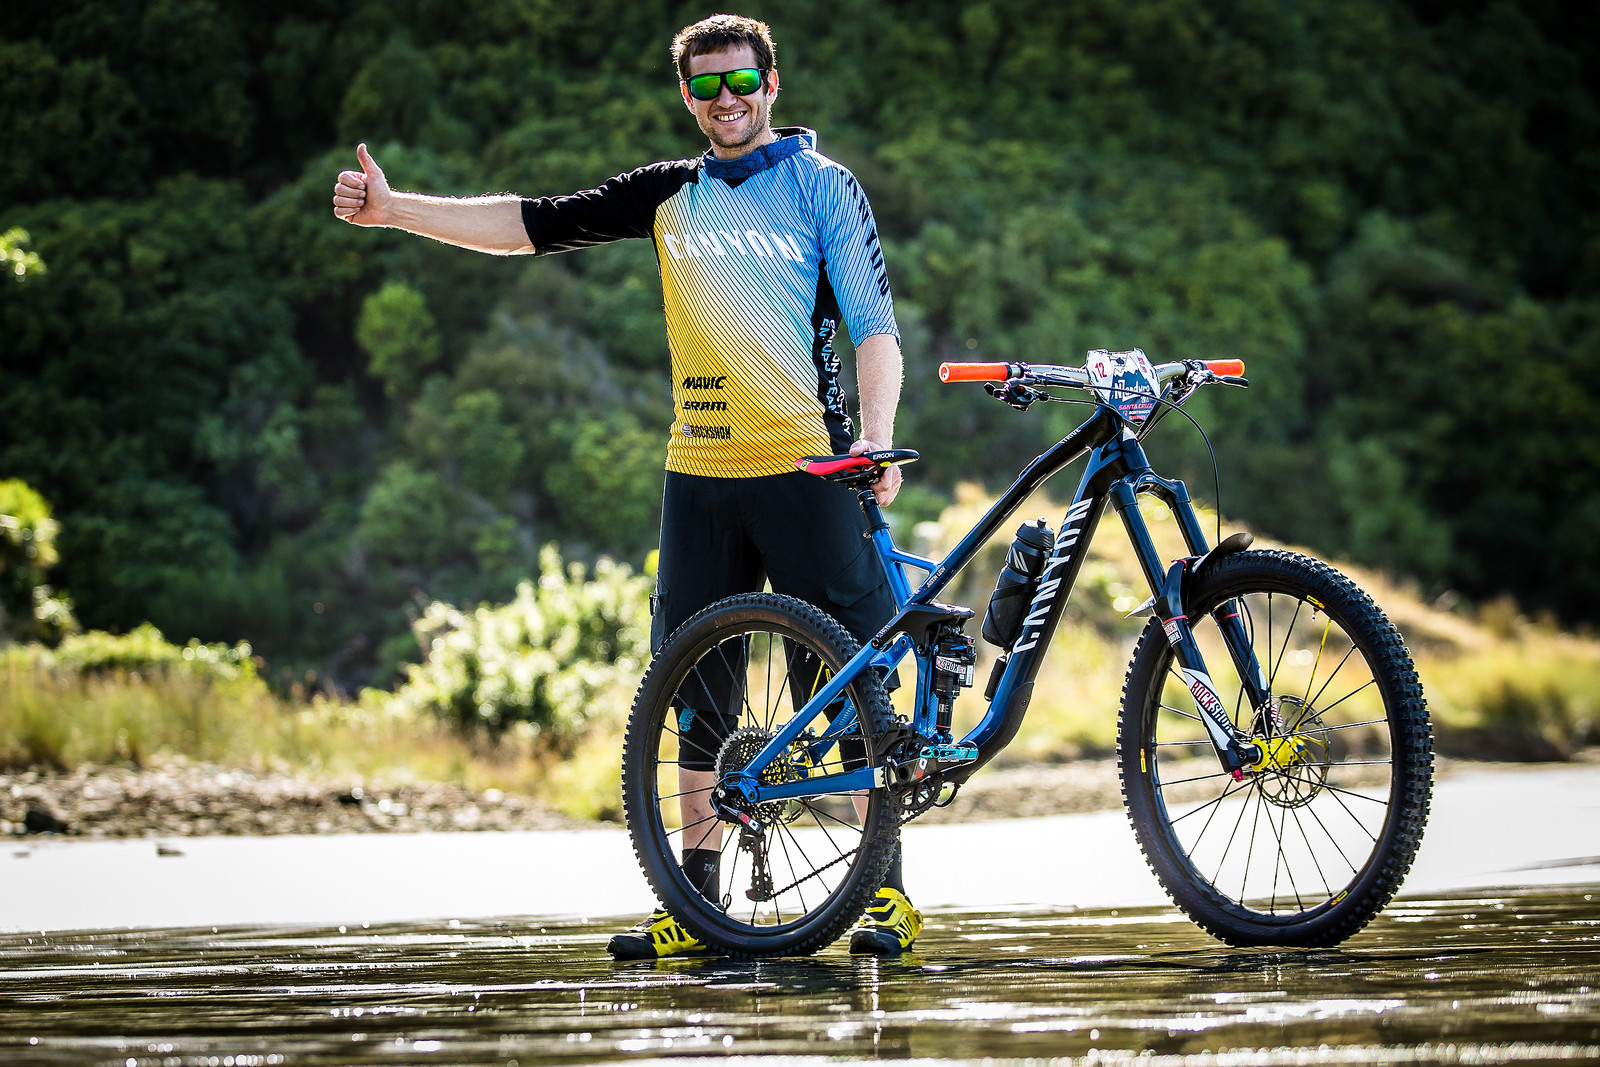 2017 NZ Enduro Pro Bikes - Justin Leov's Canyon Strive - 2017 NZ Enduro Pro Bikes - They Wreck 'Em, We Check 'Em - Mountain Biking Pictures - Vital MTB